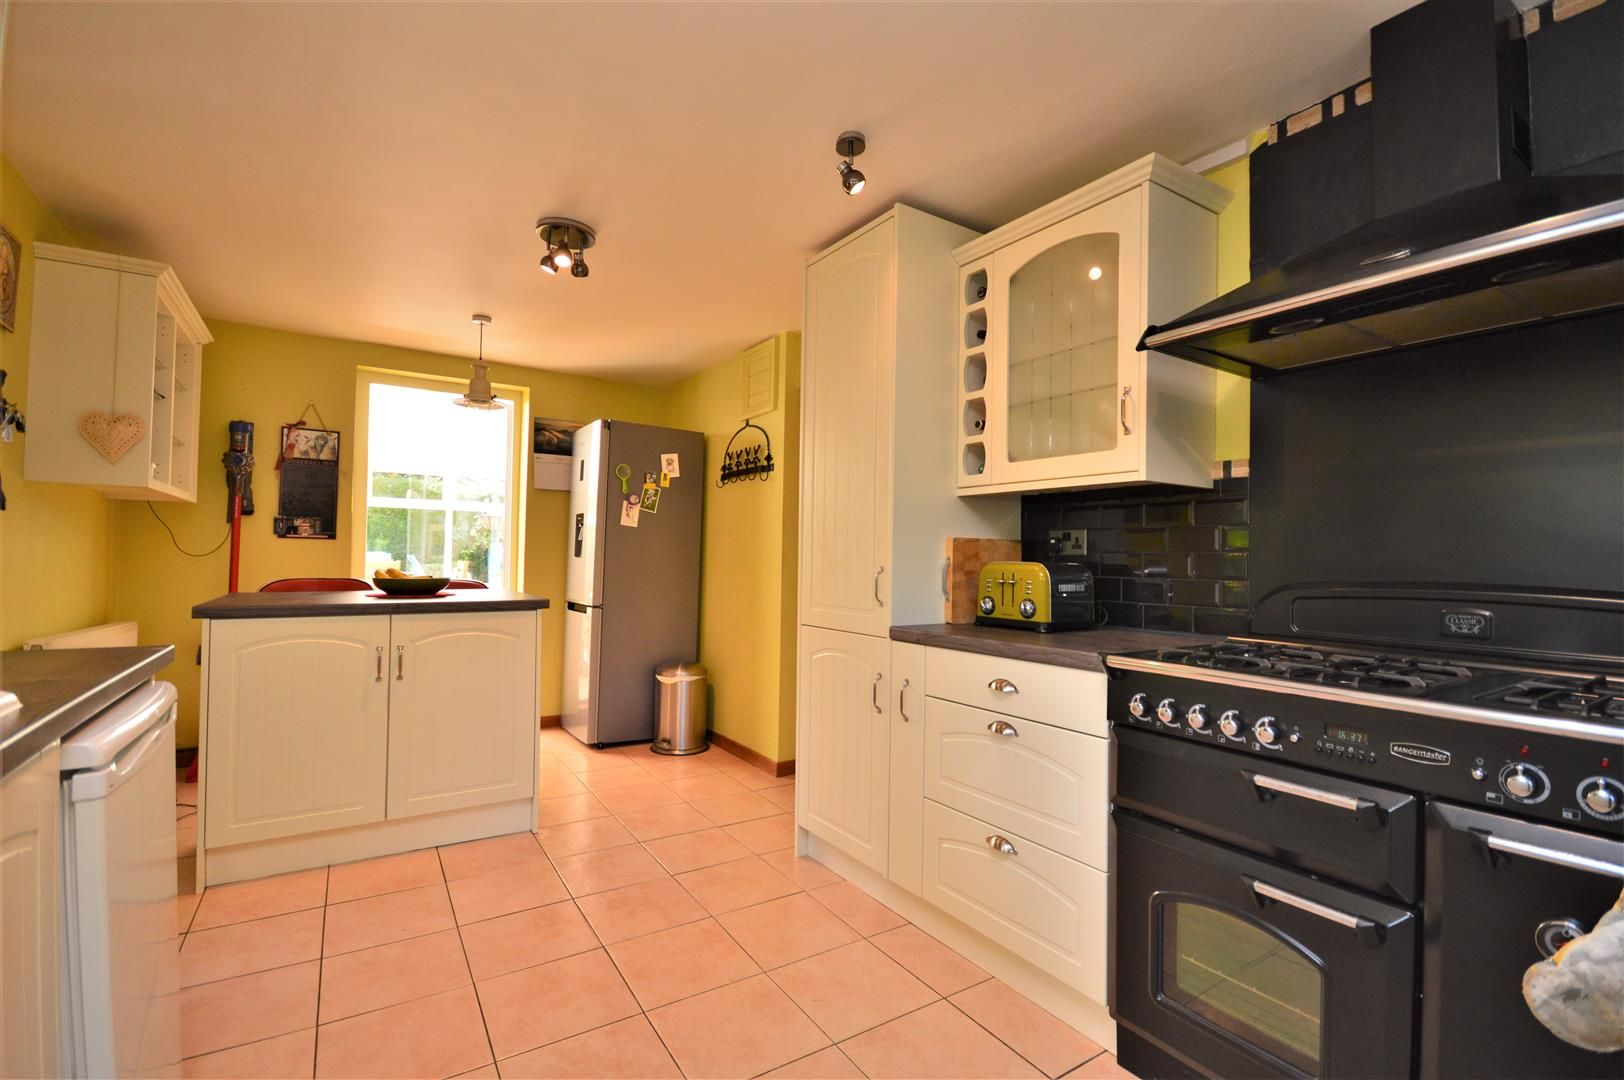 3 bed semi-detached for sale in Stretton Sugwas  - Property Image 17